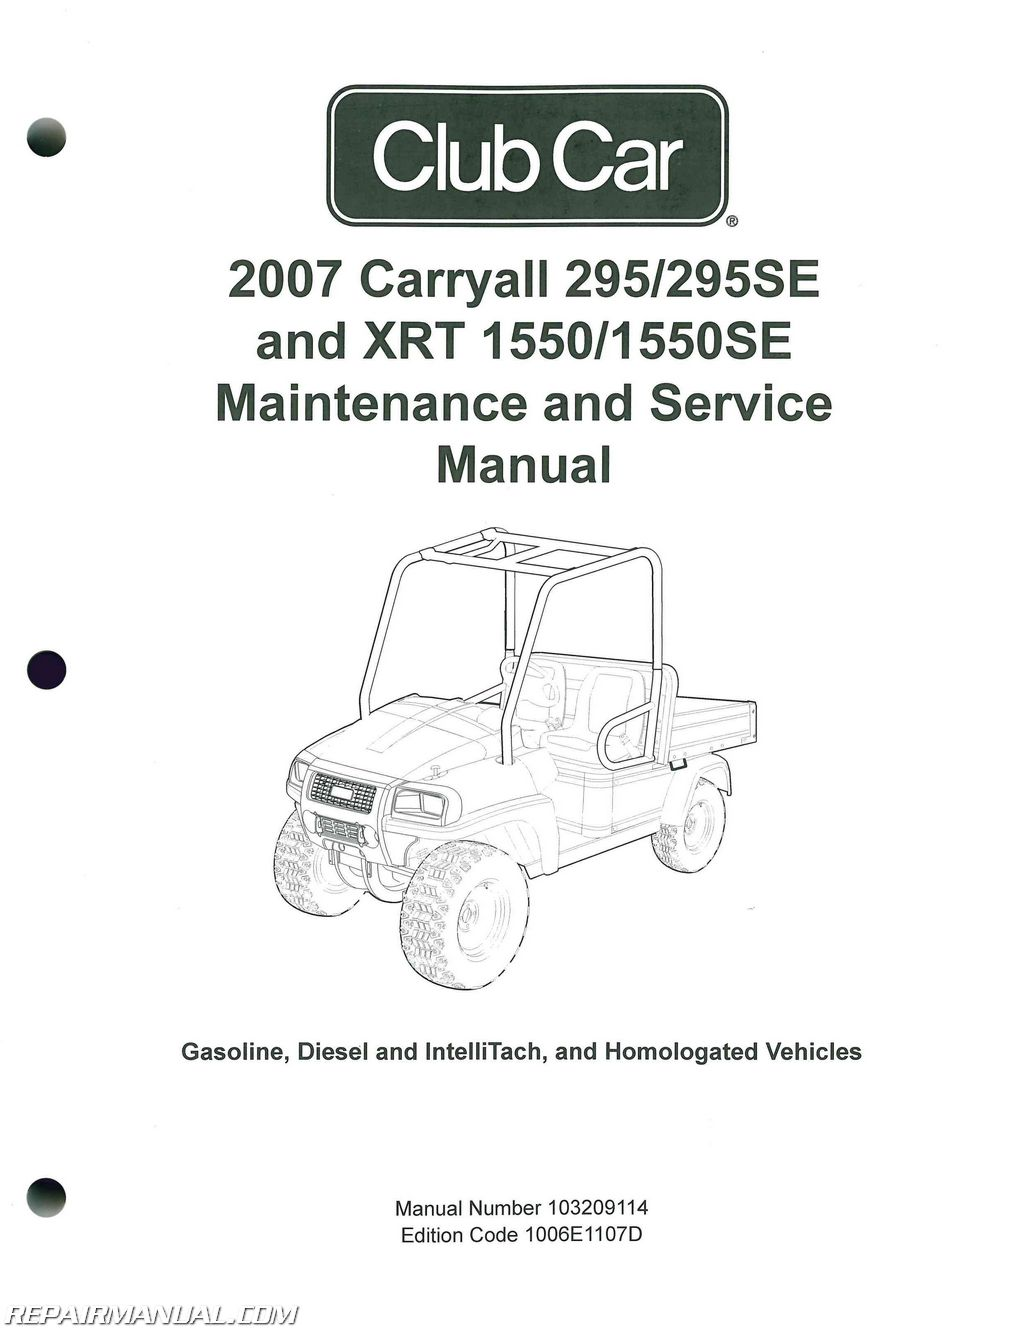 Club Car Carryall Service Manual 295 295se Xrt